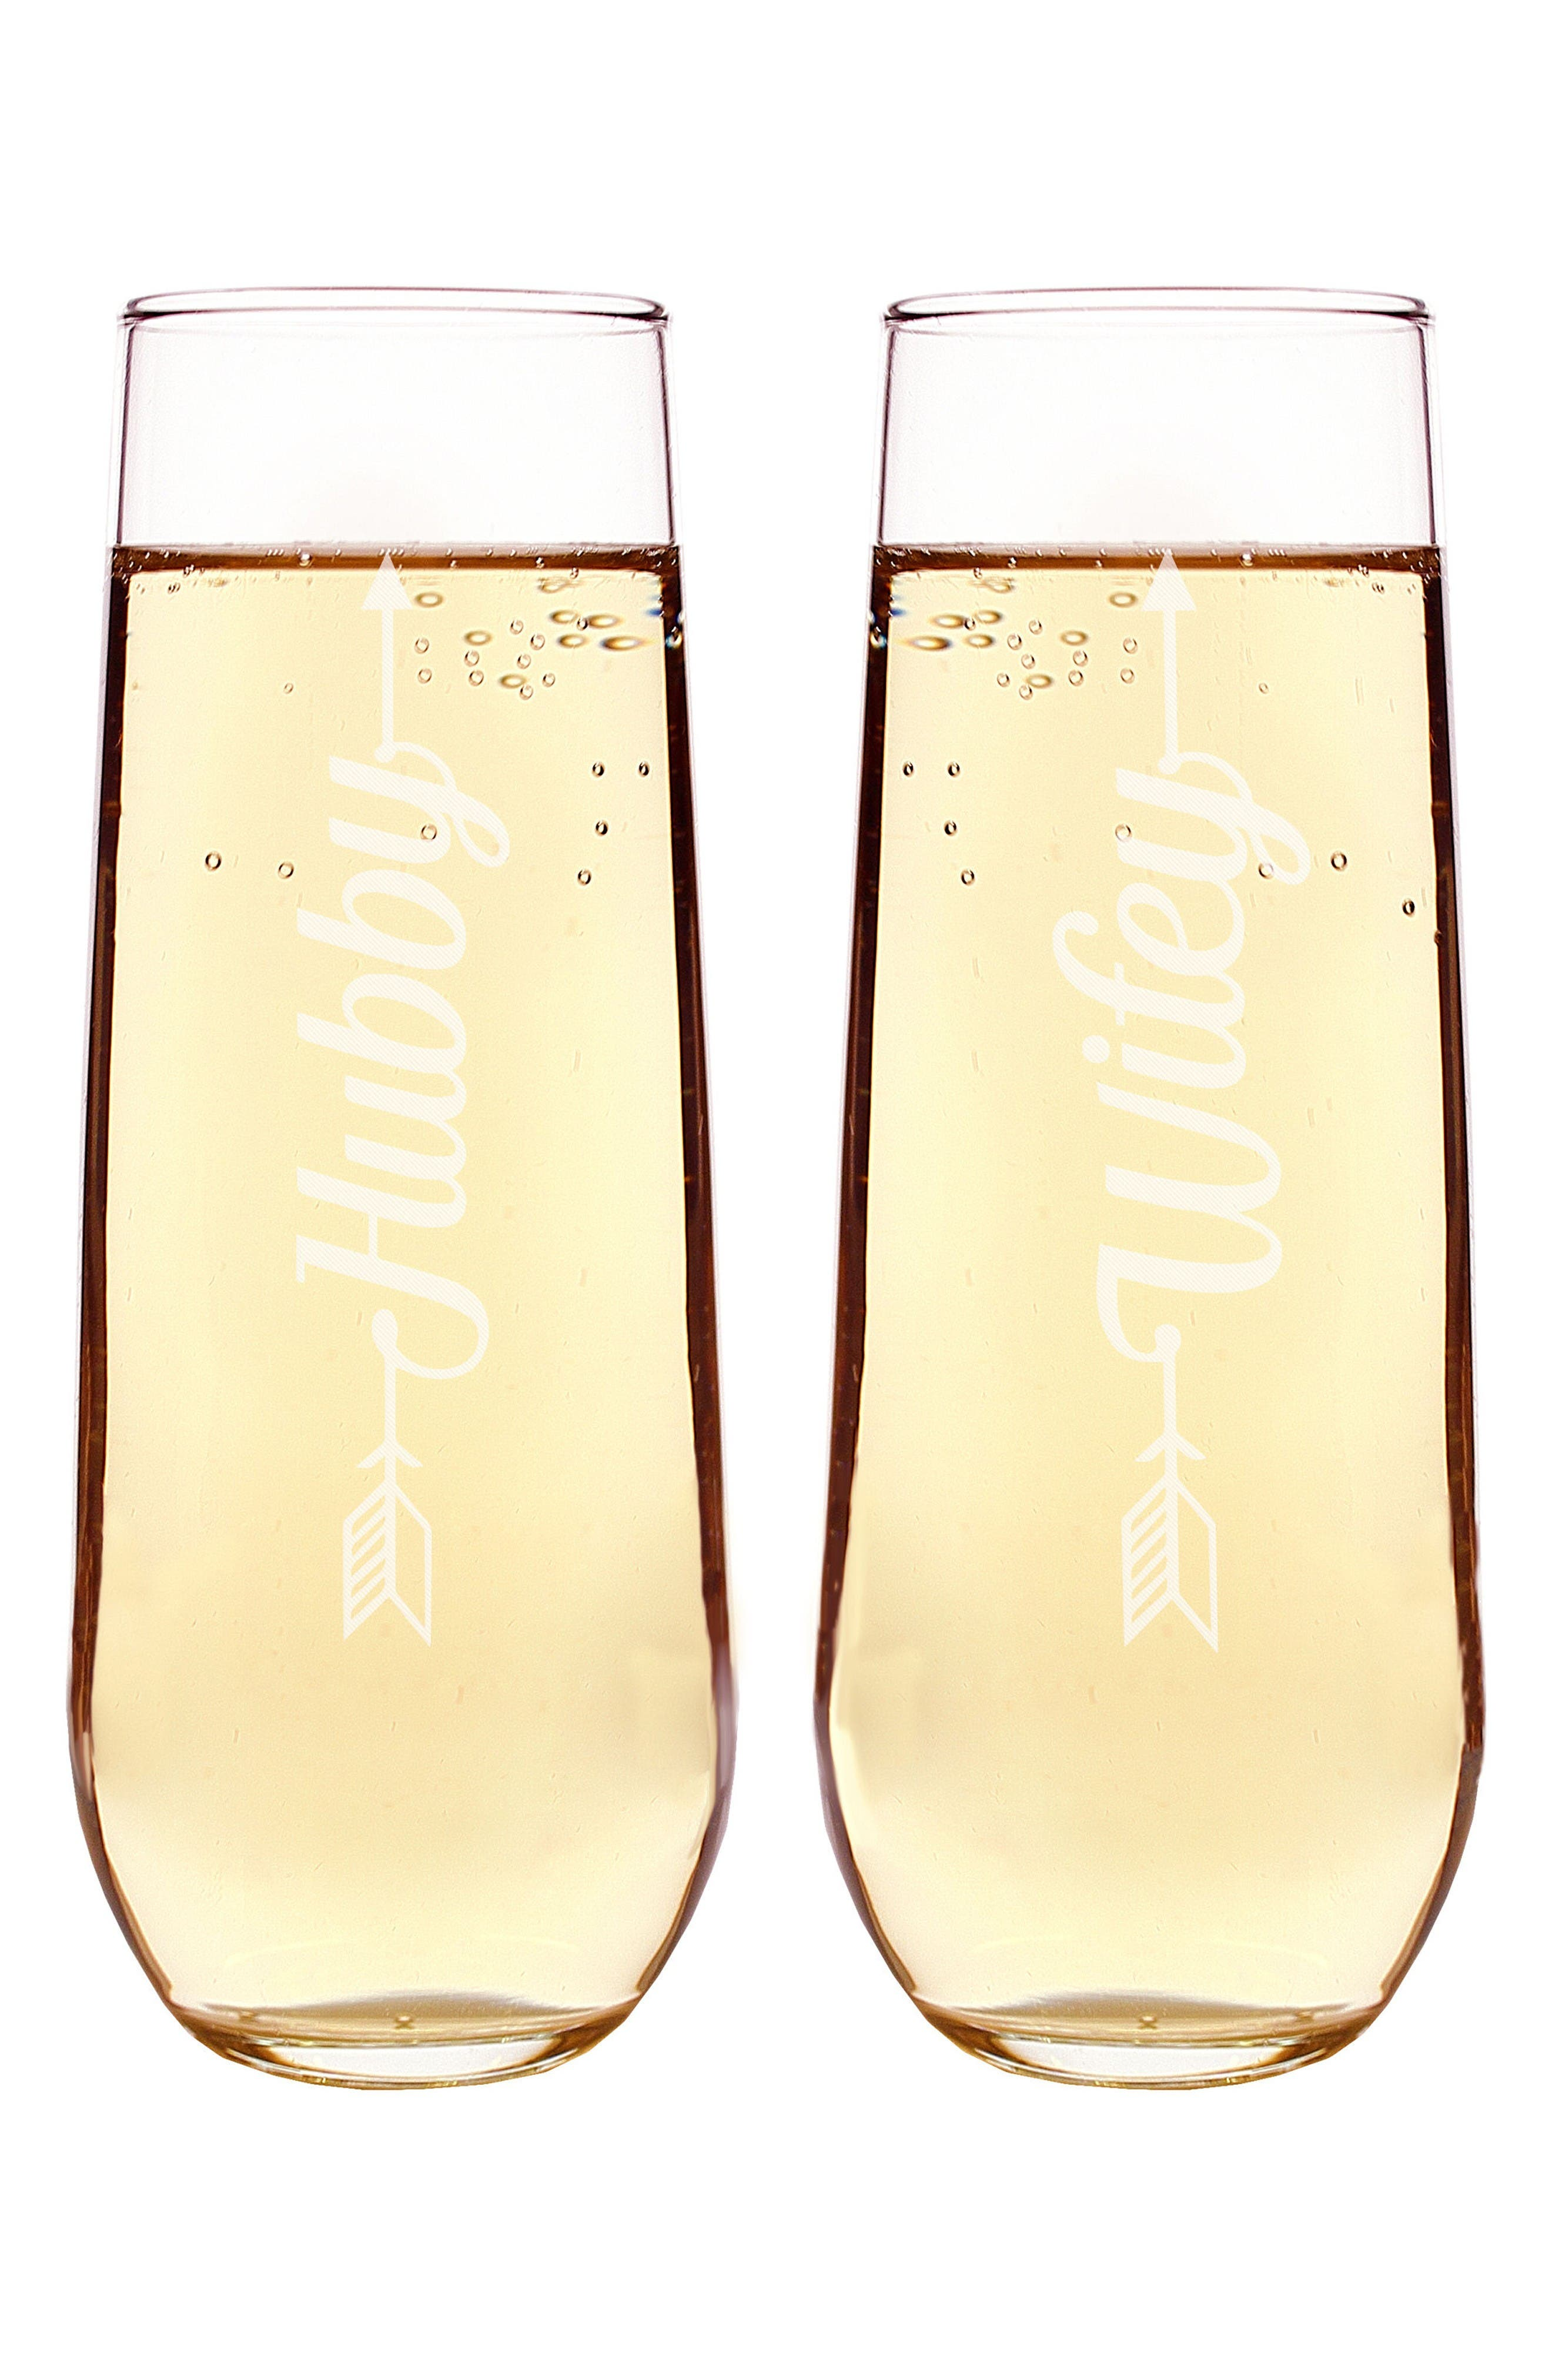 Main Image - CATHY'S CONCEPTS Hubby/Wifey Set of 2 Stemless Champagne Flutes